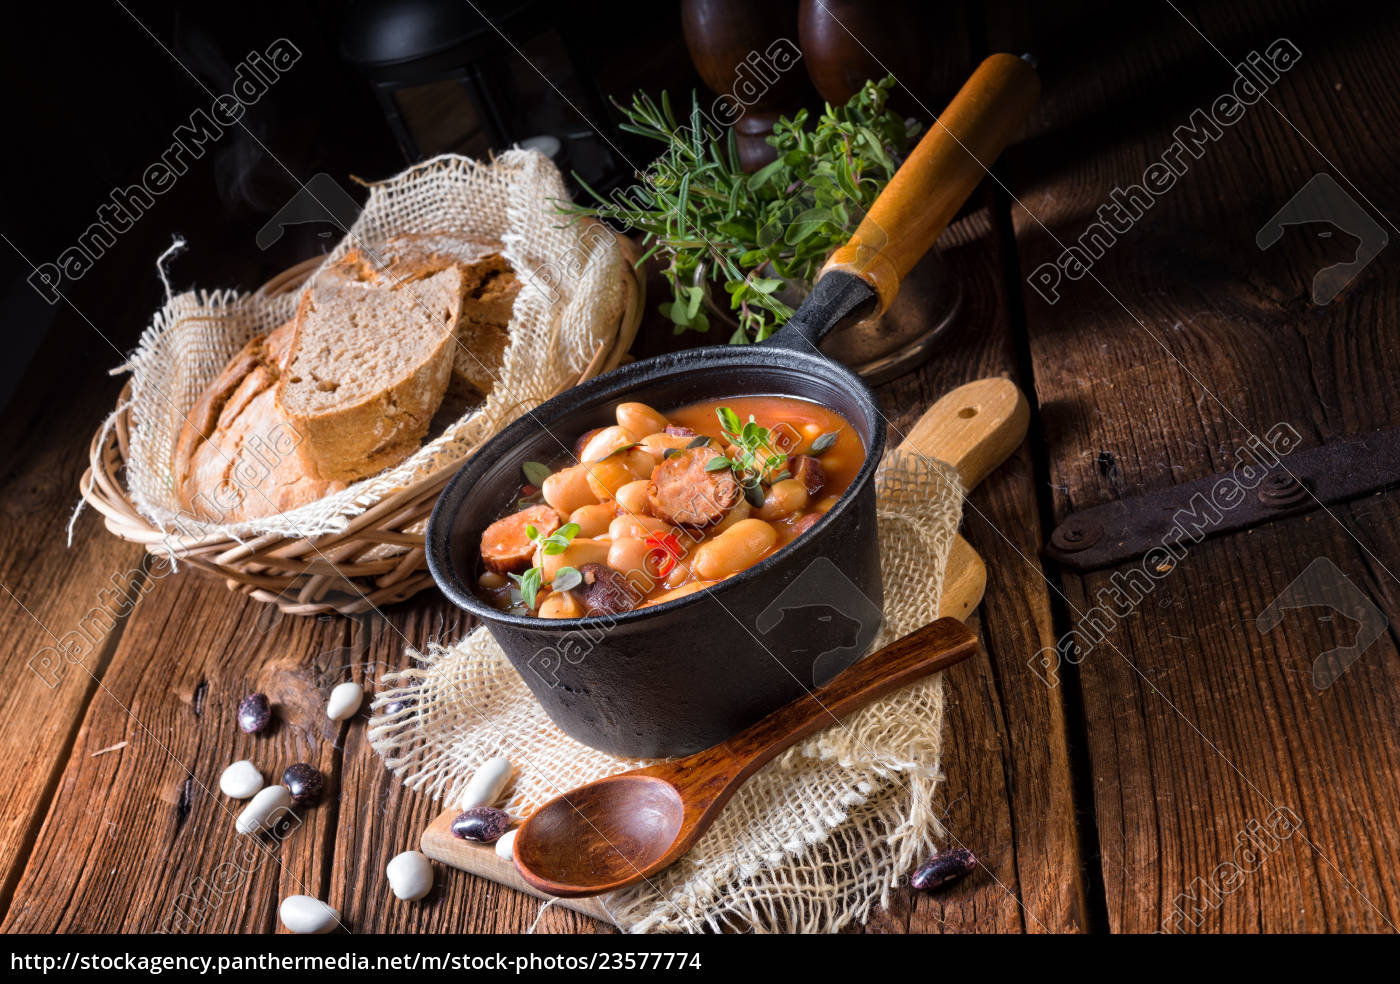 polish, baked, beans, with, sausage - 23577774